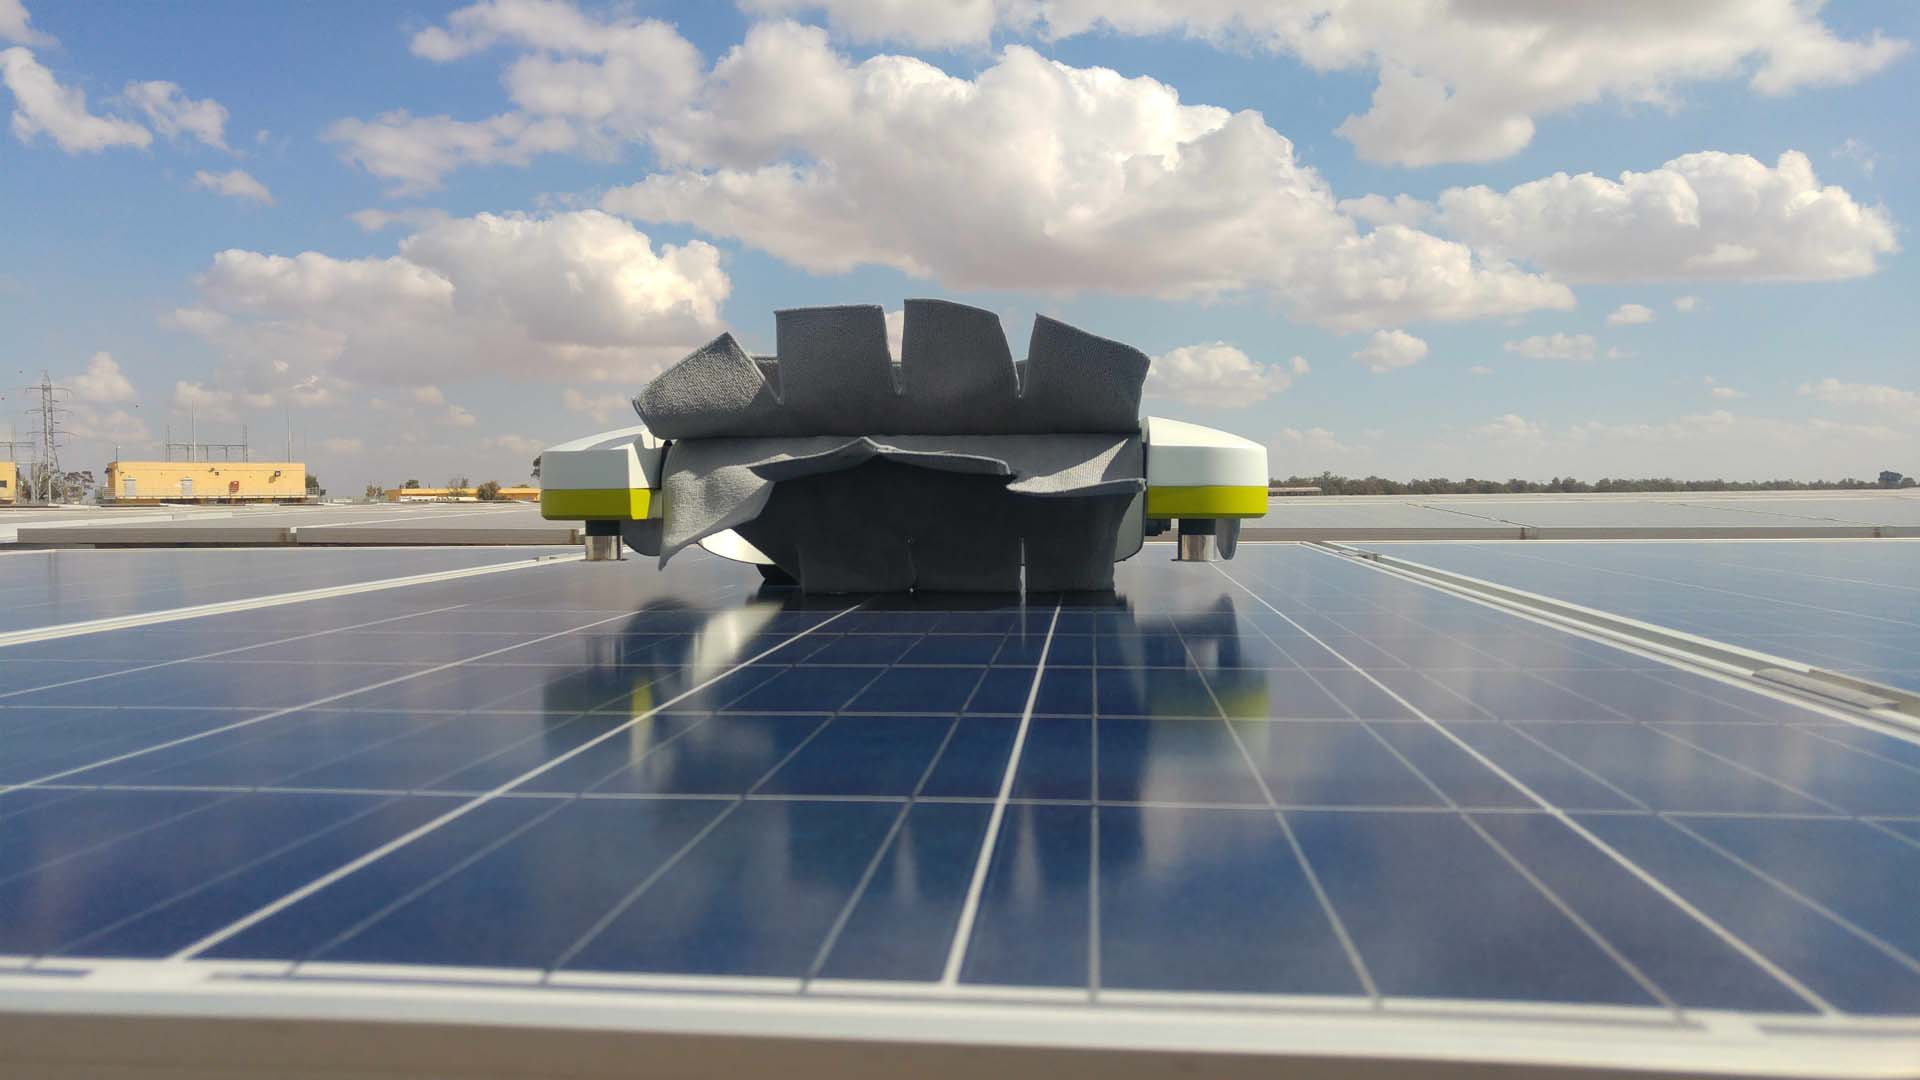 The first commercial deployment of Ecoppia T4 is already underway at a large installation in the Middle East and is slated to become operational by the end of April. Image: Ecoppia